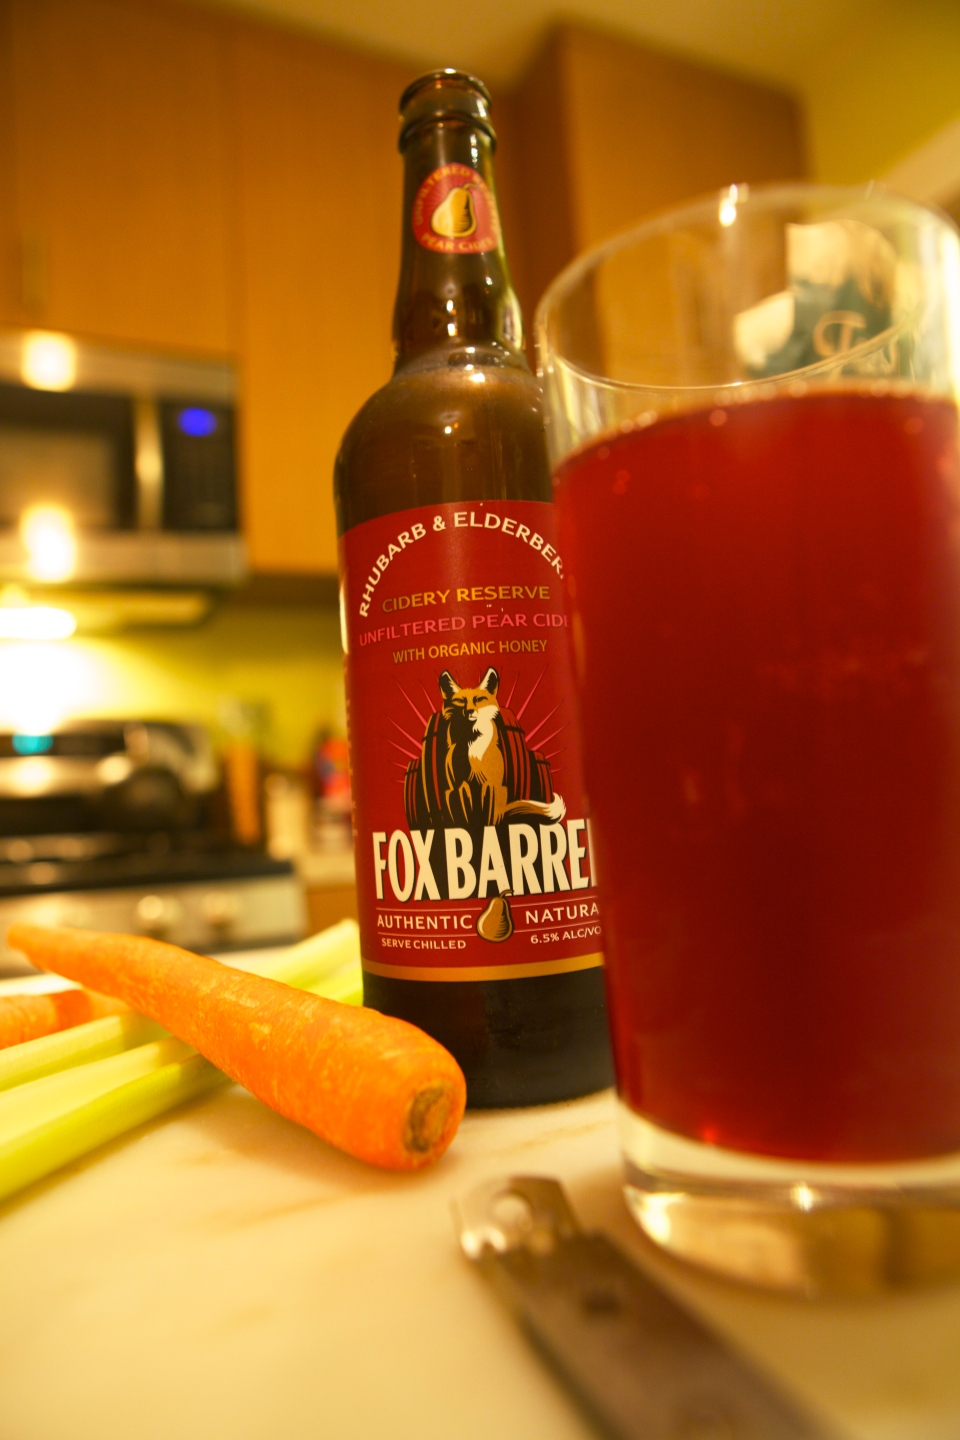 Fox Barrel Pear Cider with Rhubarb and Elderberries